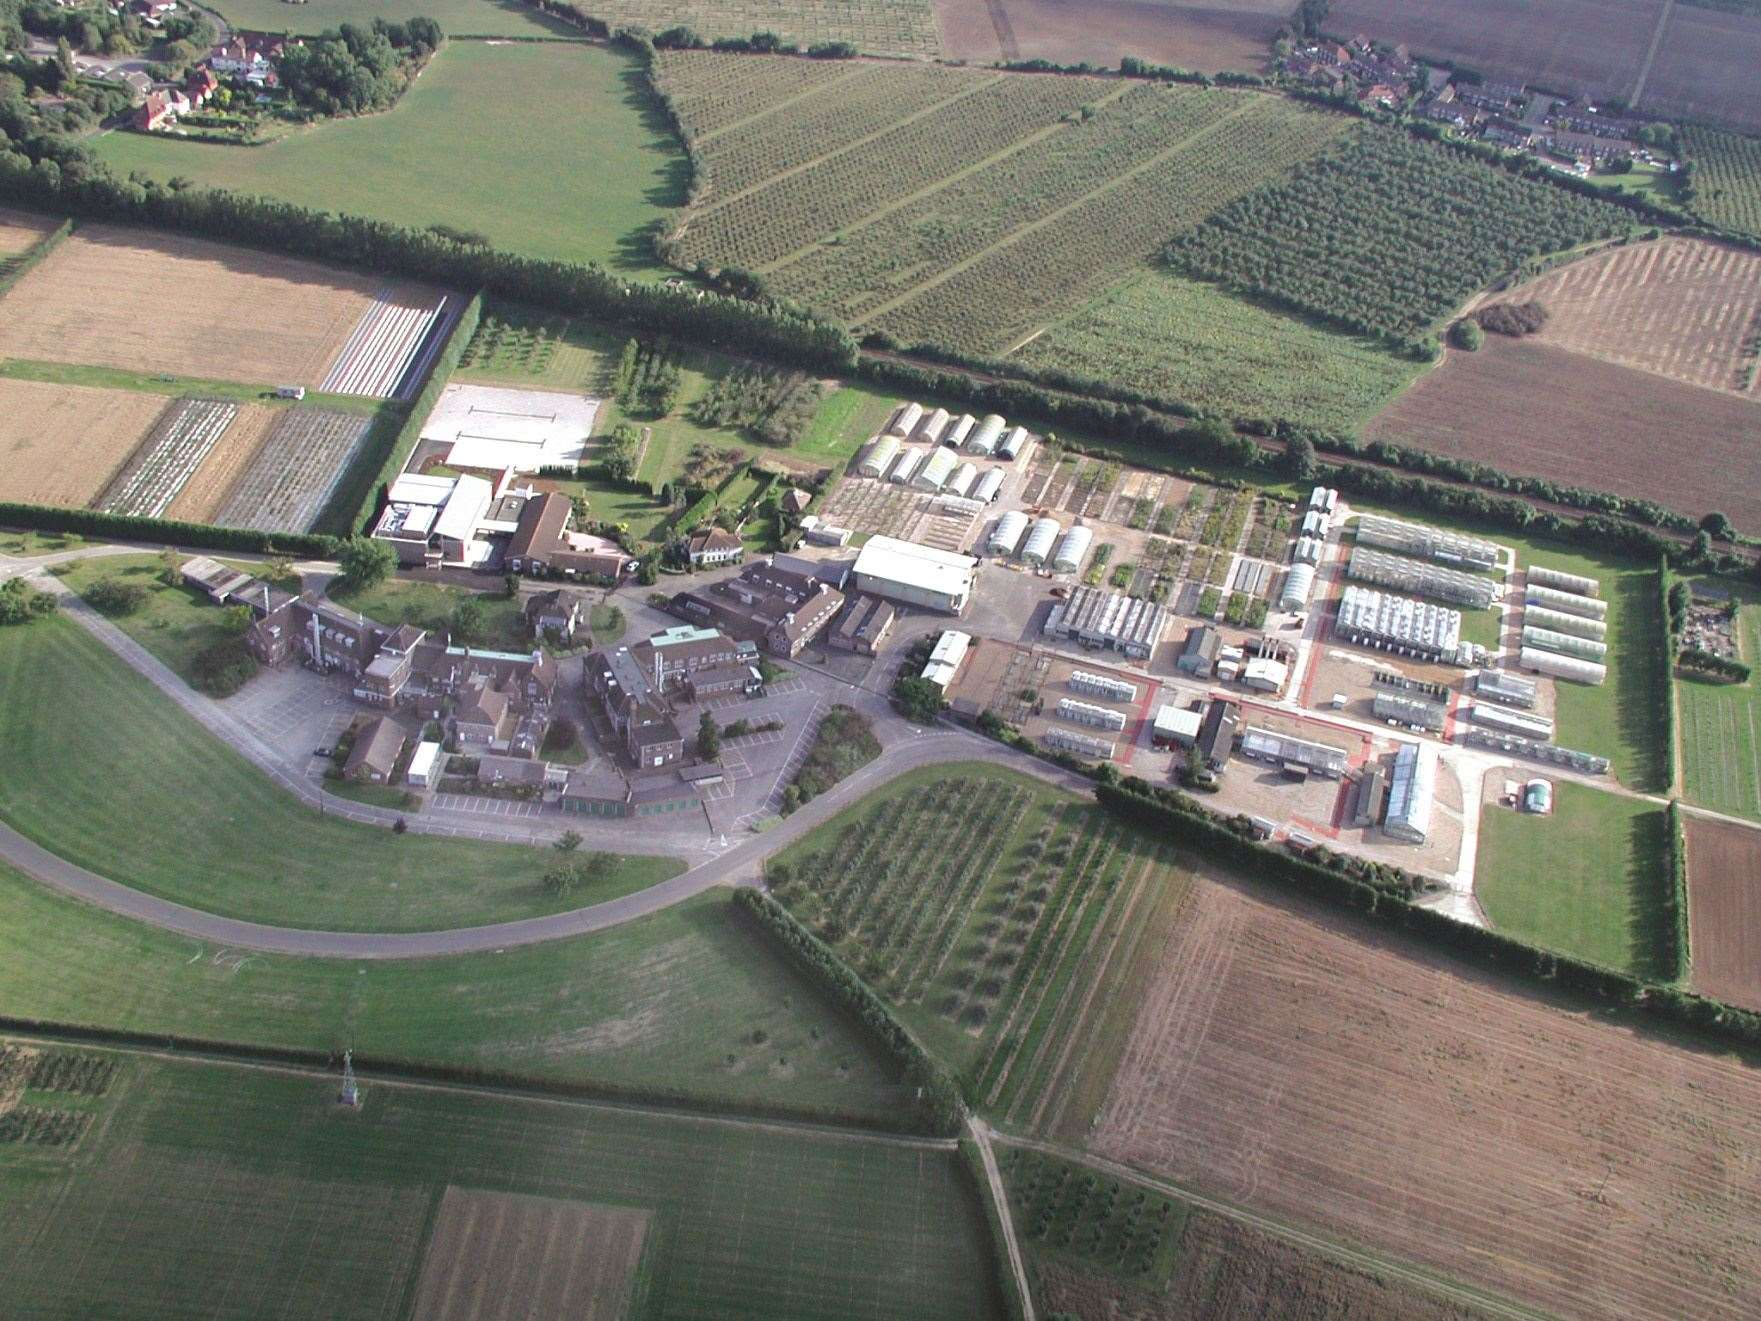 The East Malling Research Centre as it is now